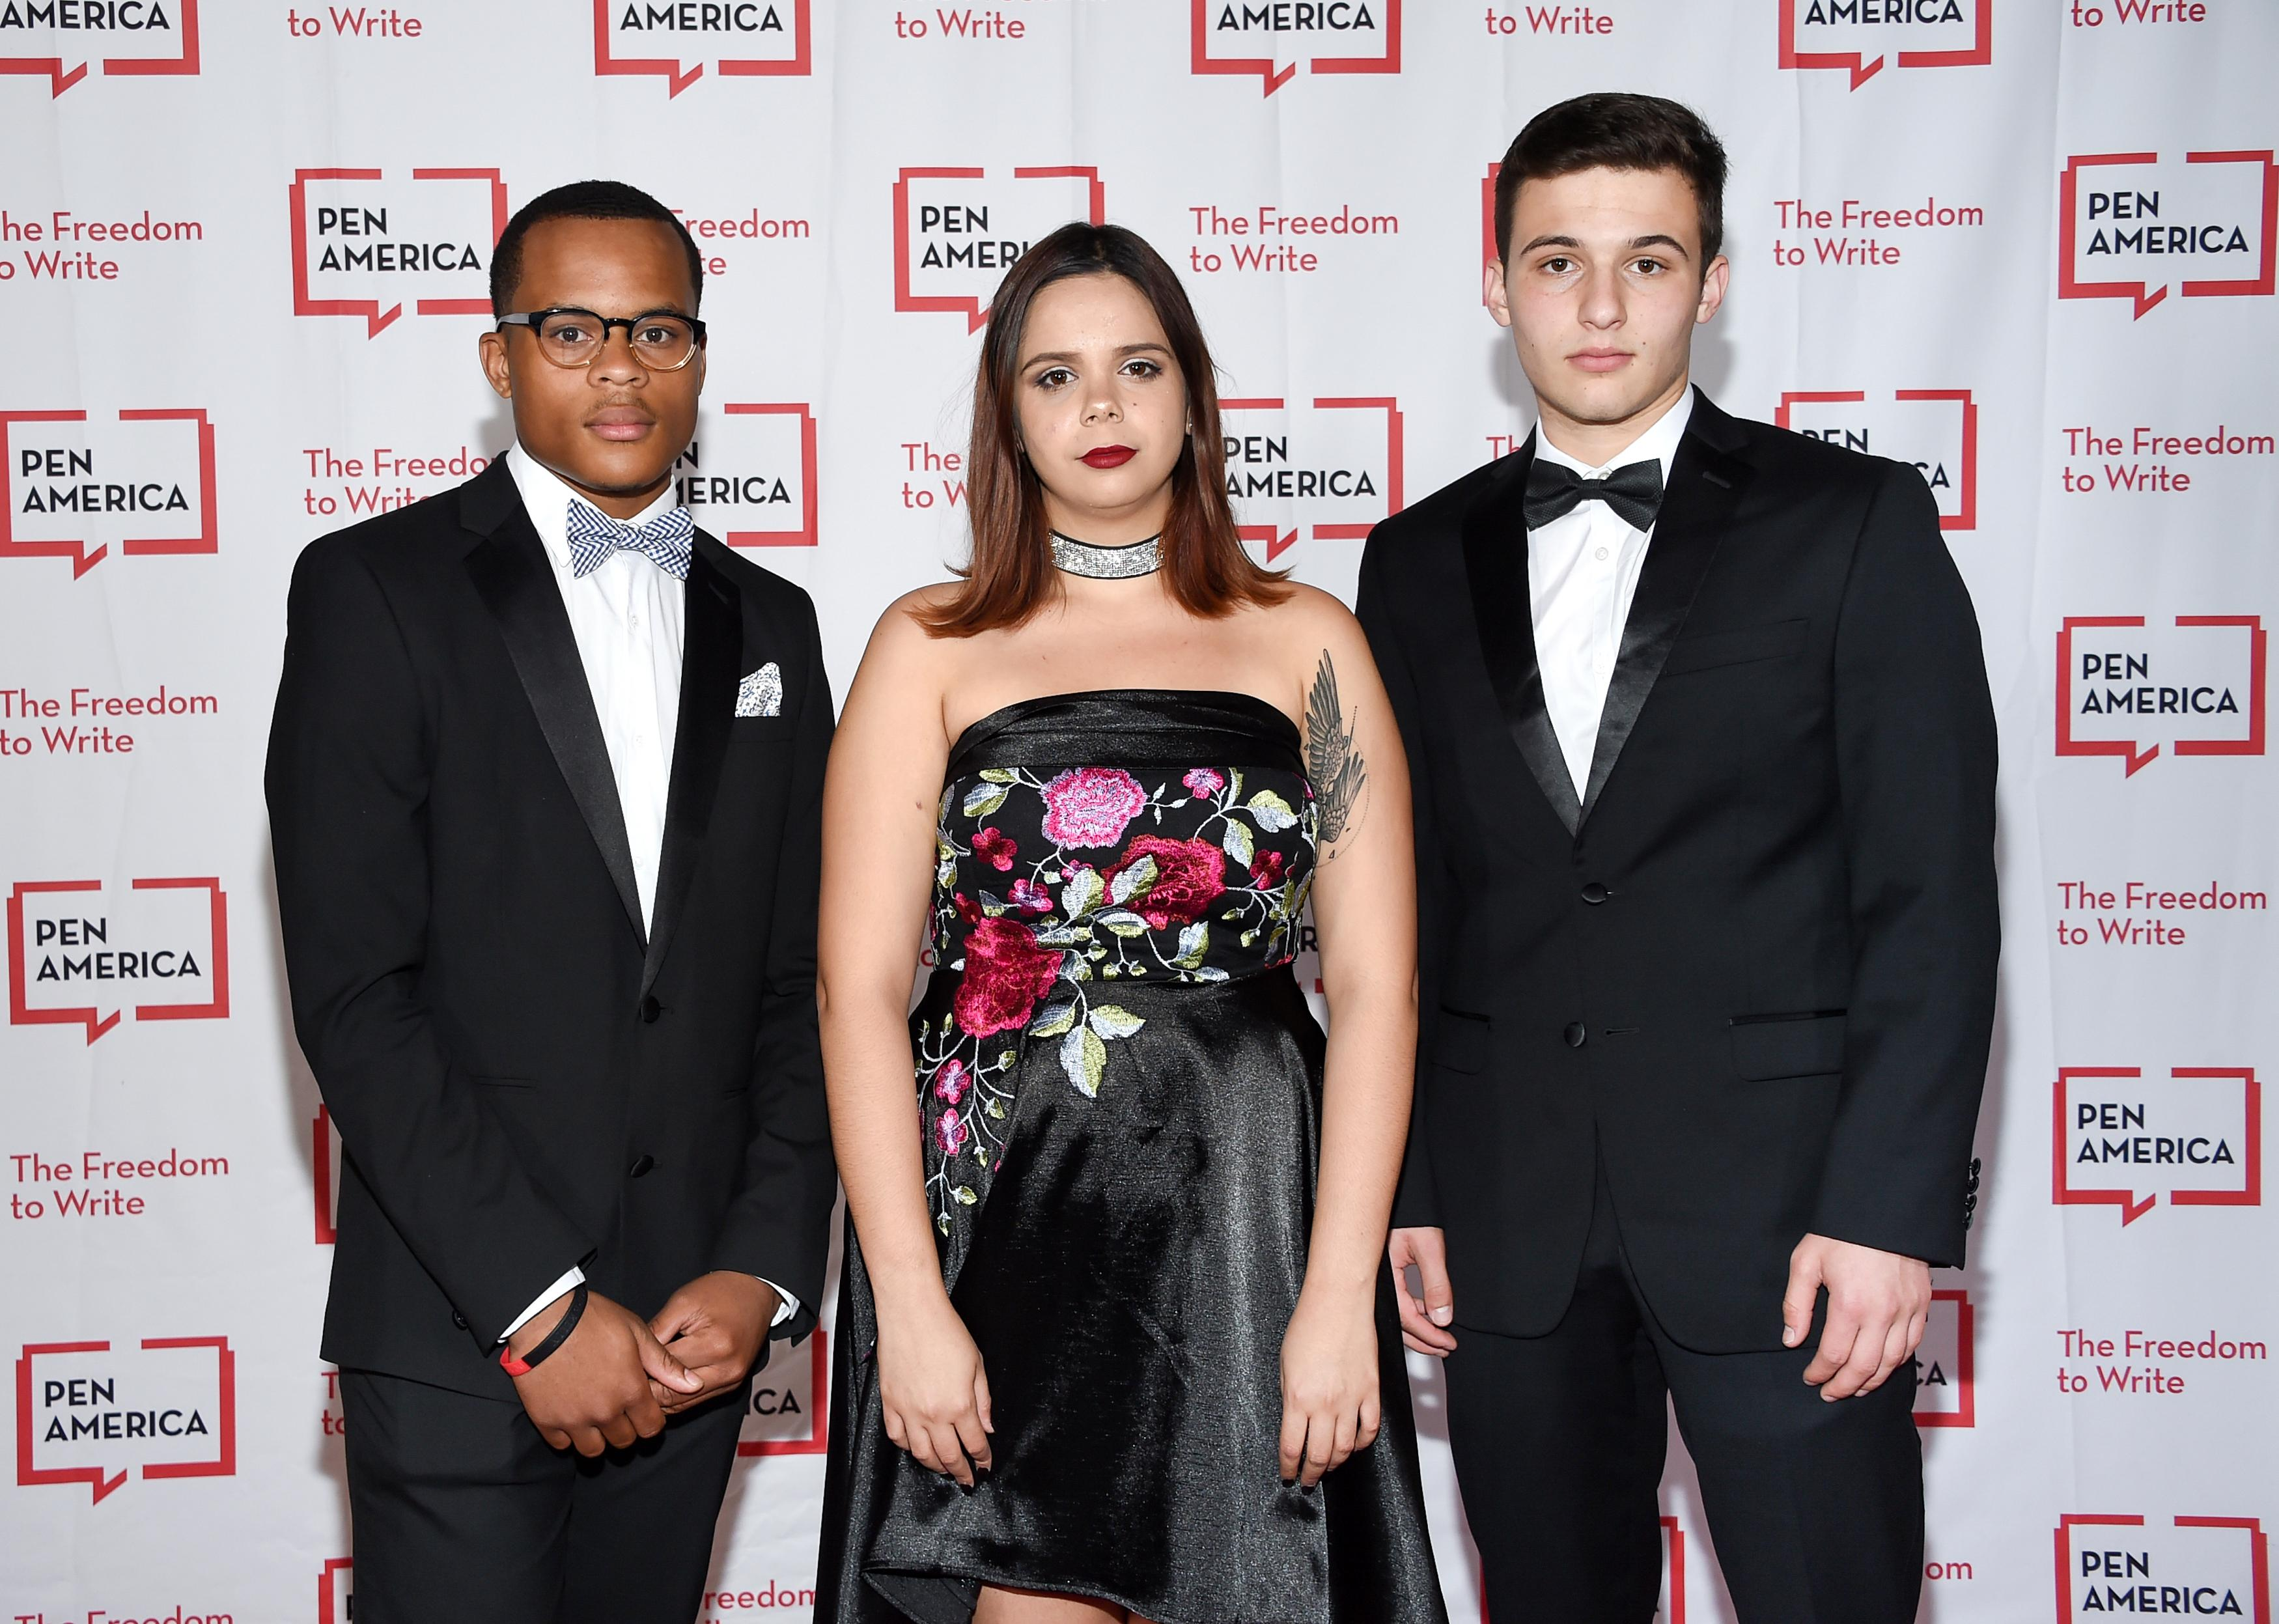 Youth anti-gun violence activist Zion Kelly, left, poses with Parkland students and youth anti-gun violence activists Samantha Fuentes and Cameron Kasky at the 2018 PEN Literary Gala at the American Museum of Natural History on Tuesday, May 22, 2018, in New York. (Photo by Evan Agostini/Invision/AP)